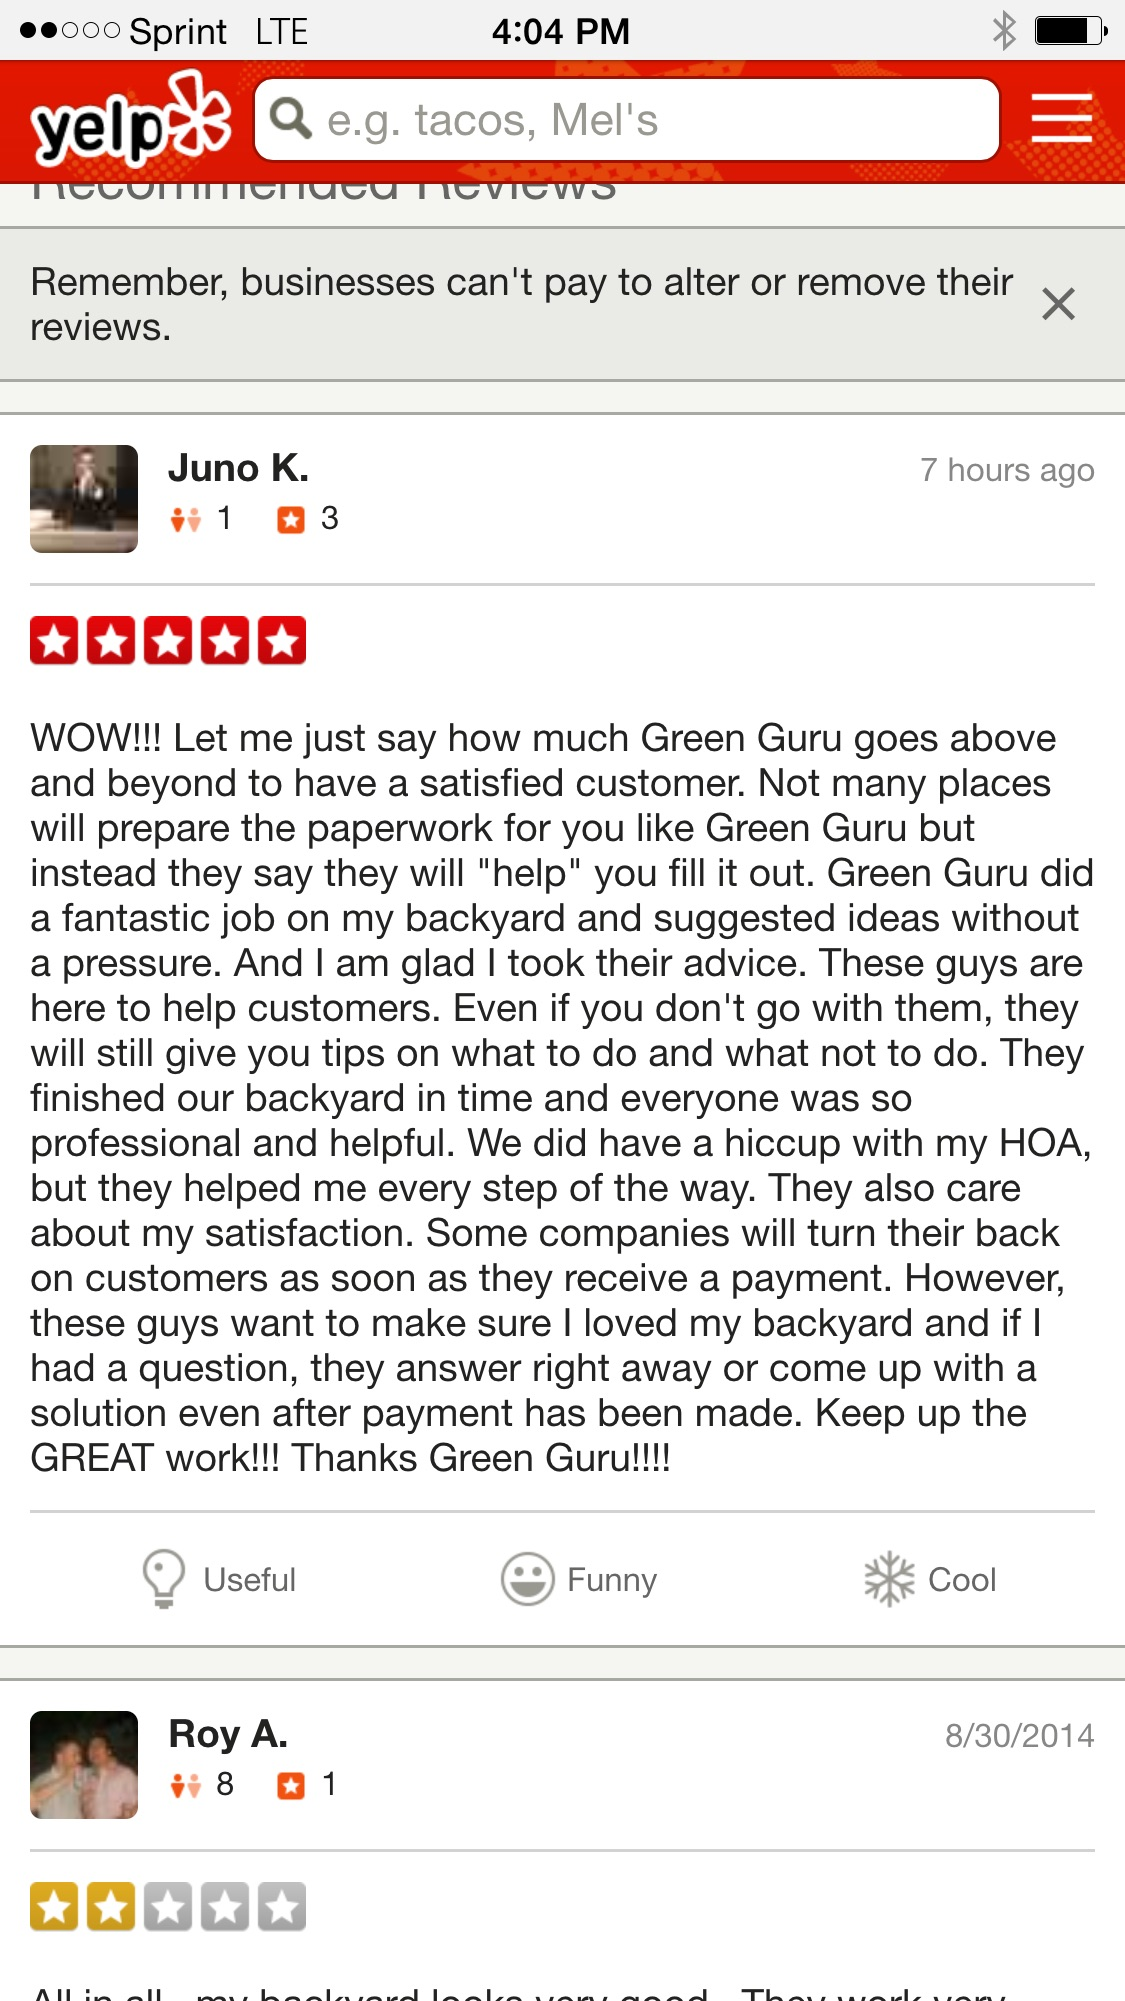 A Positive Review On Yelp Gets Buried At The Bottom